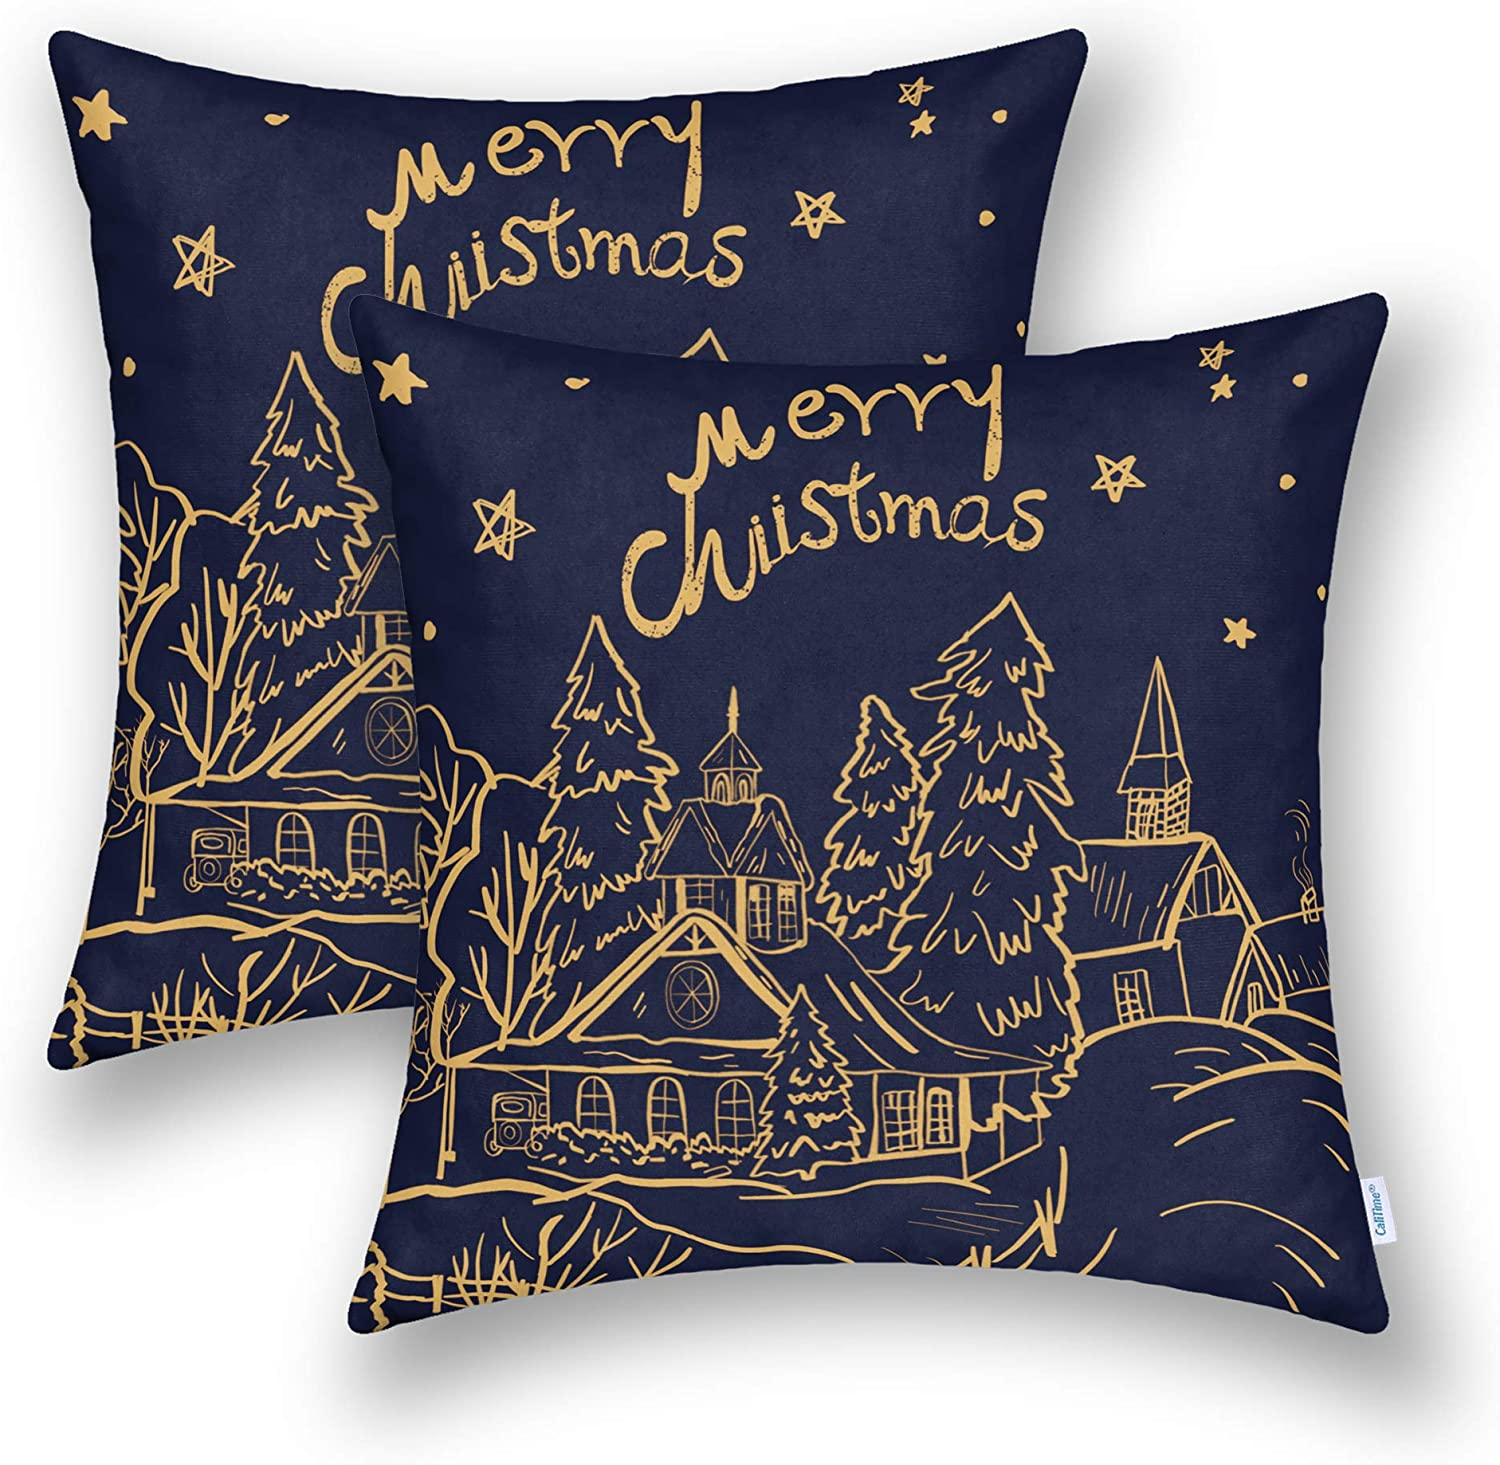 CaliTime Throw Pillow Cases Pack of 2 Cozy Fleece Christmas Night Village House Tree Printed Cushion Covers for Couch Sofa Bedroom 18 X 18 Inches Navy Blue